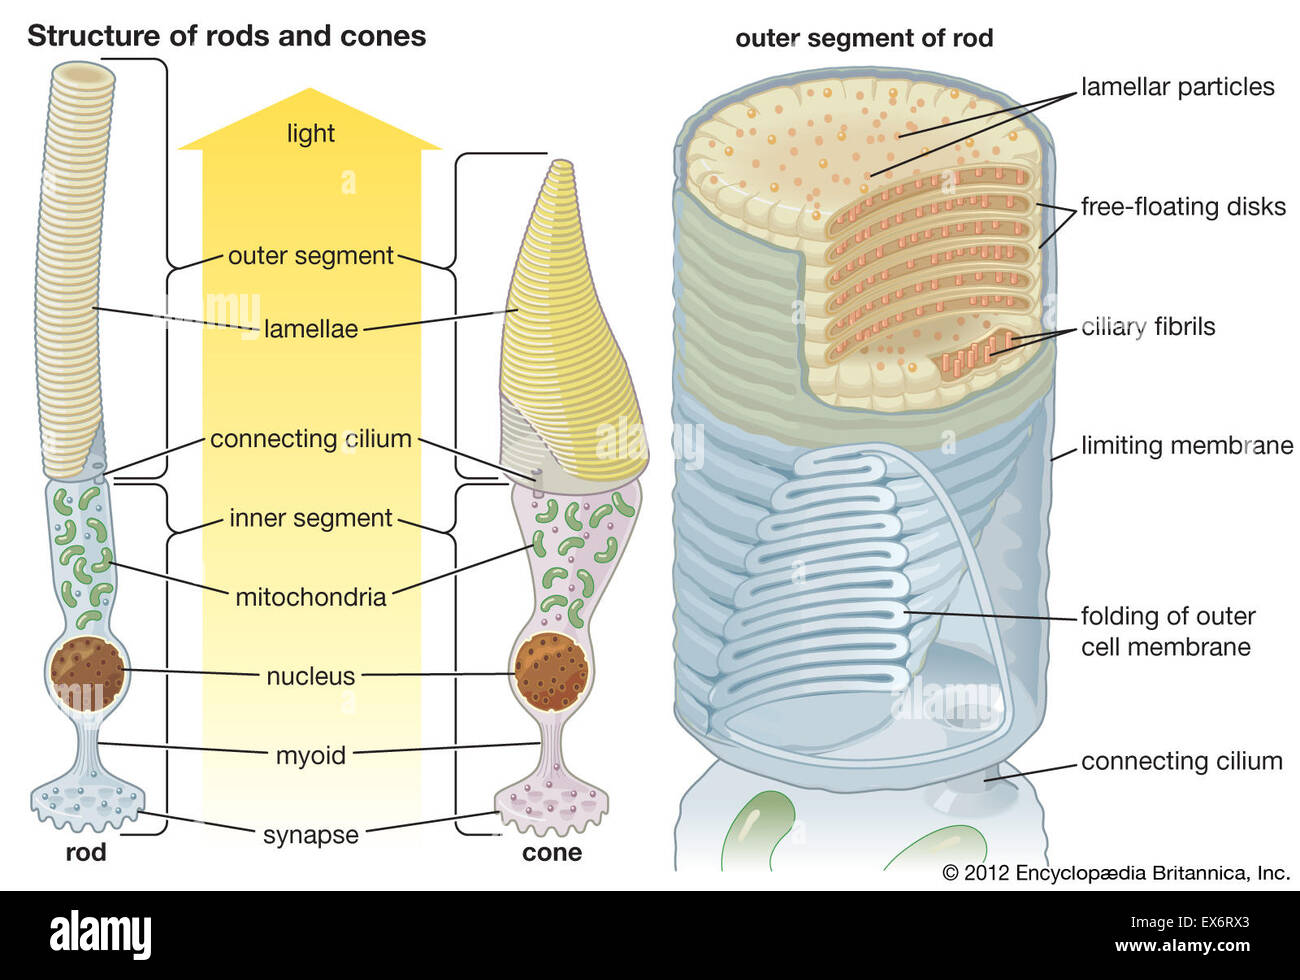 Structures Of Rods And Cones Stock Photo 84973003 Alamy